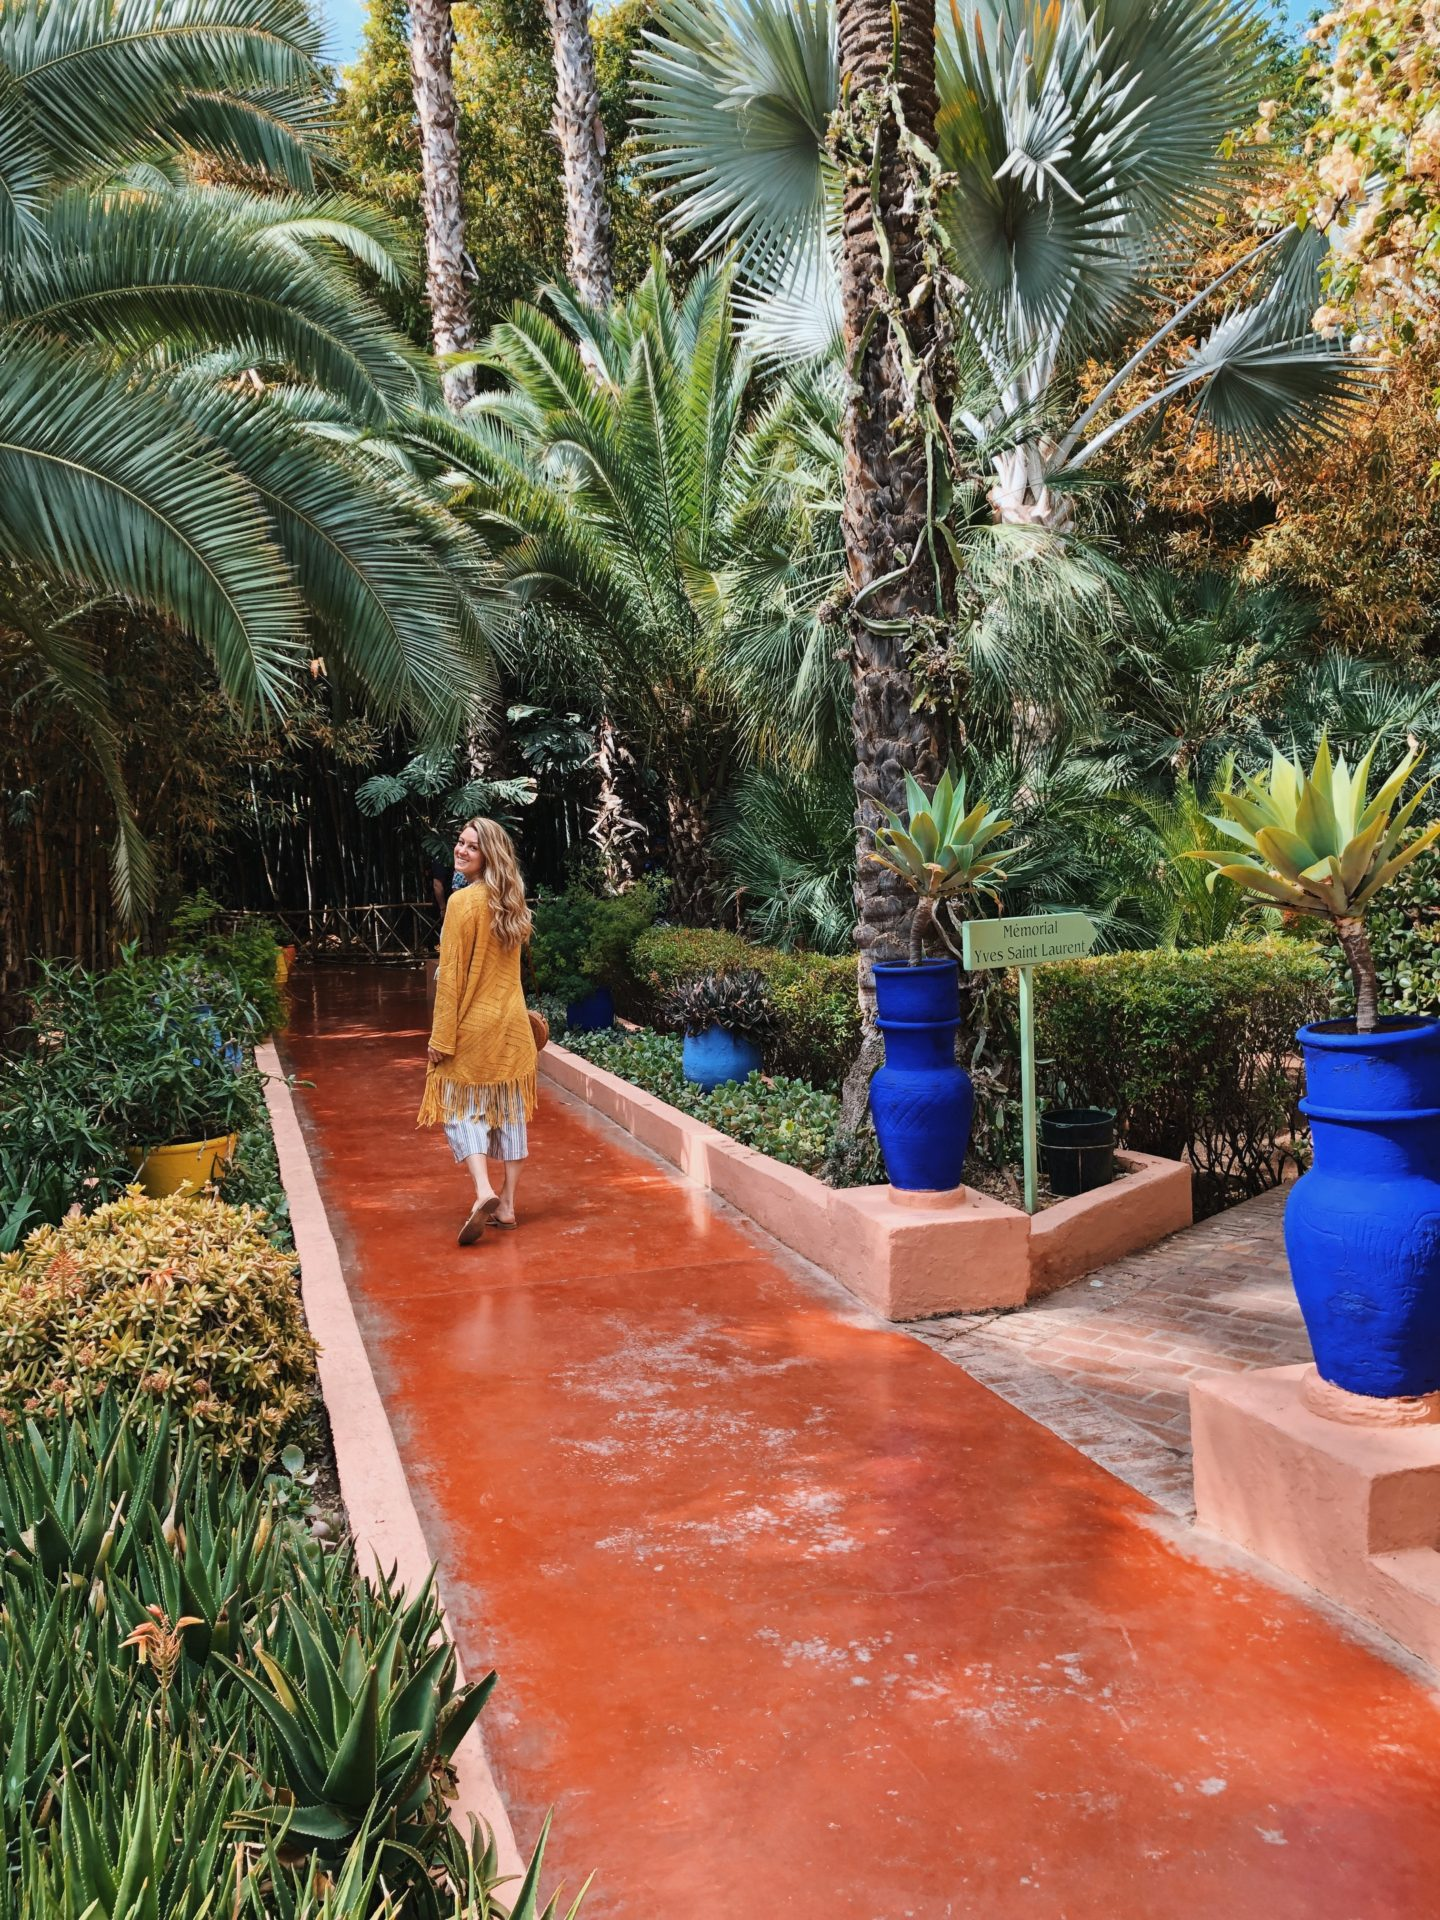 Bright colors and gorgeous plans, cactus and flowers galore at Majorelle Gardens.